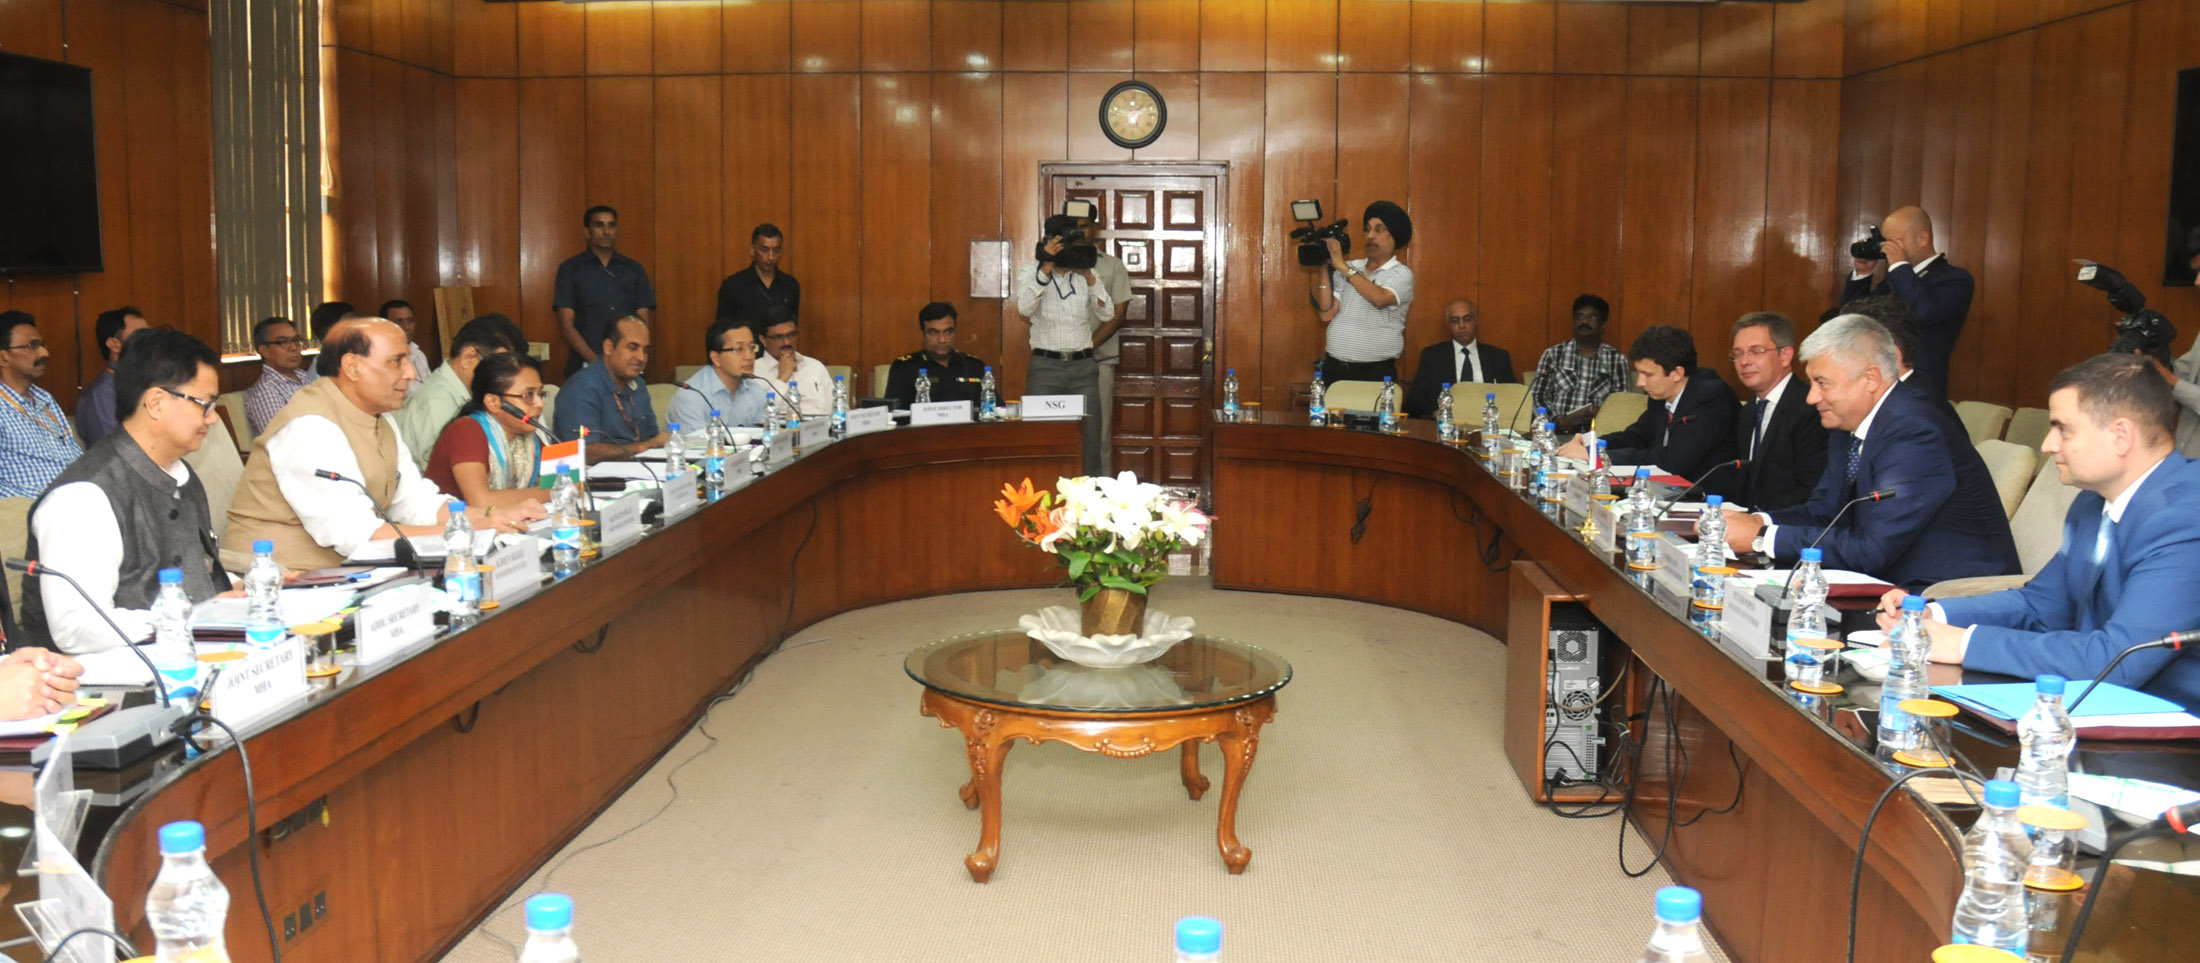 The Union Home Minister, Shri Rajnath Singh with the Minister of the Interior of Russia, Mr. Vladimir Kolokoltsev, at the Home Minister's meeting, in New Delhi on September 07, 2015. The Minister of State for Home Affairs, Shri Kiren Rijiju is also seen.